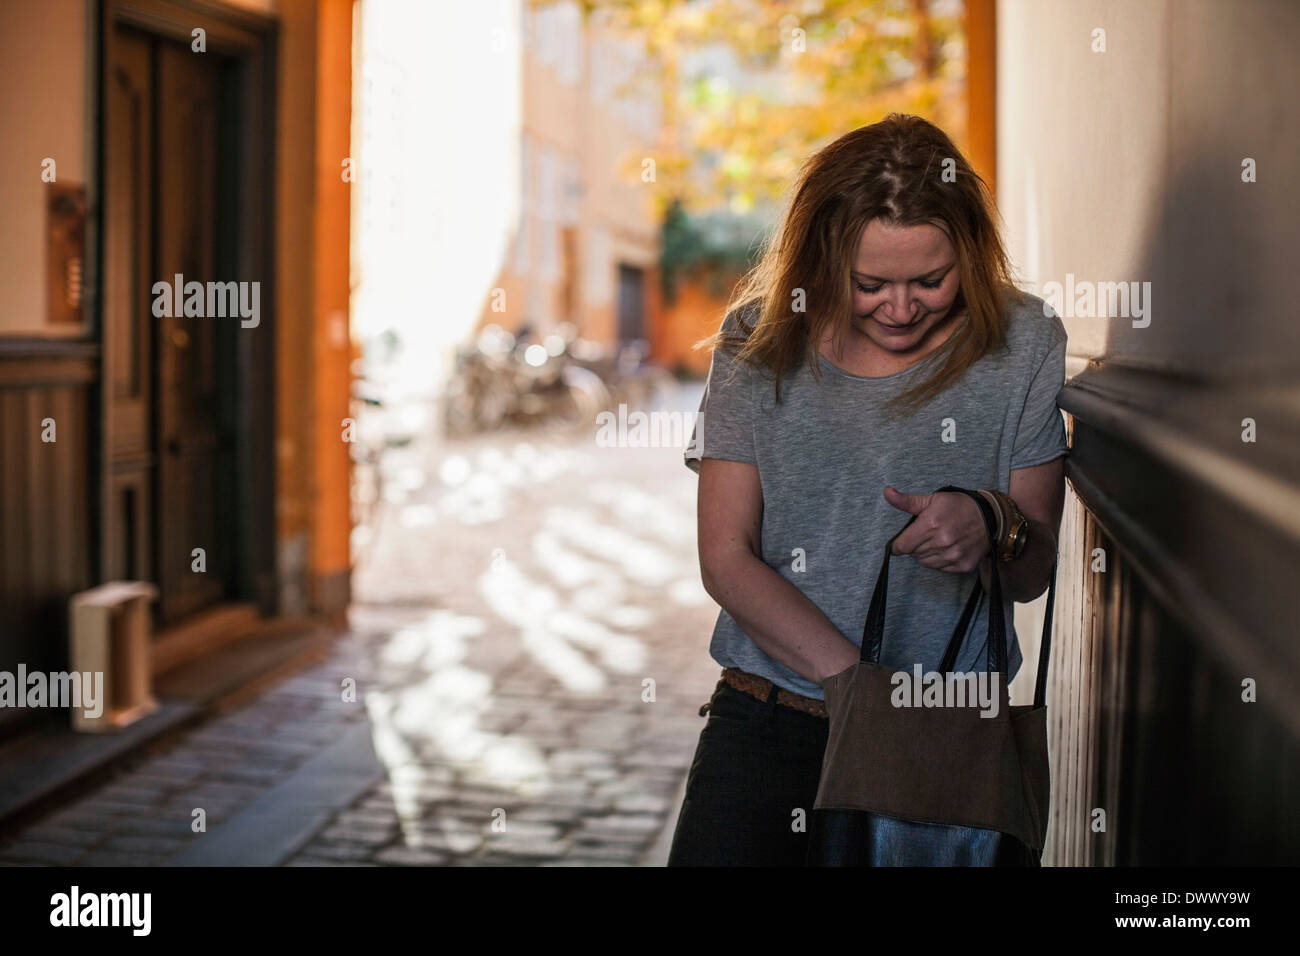 Mid adult woman searching something into purse - Stock Image